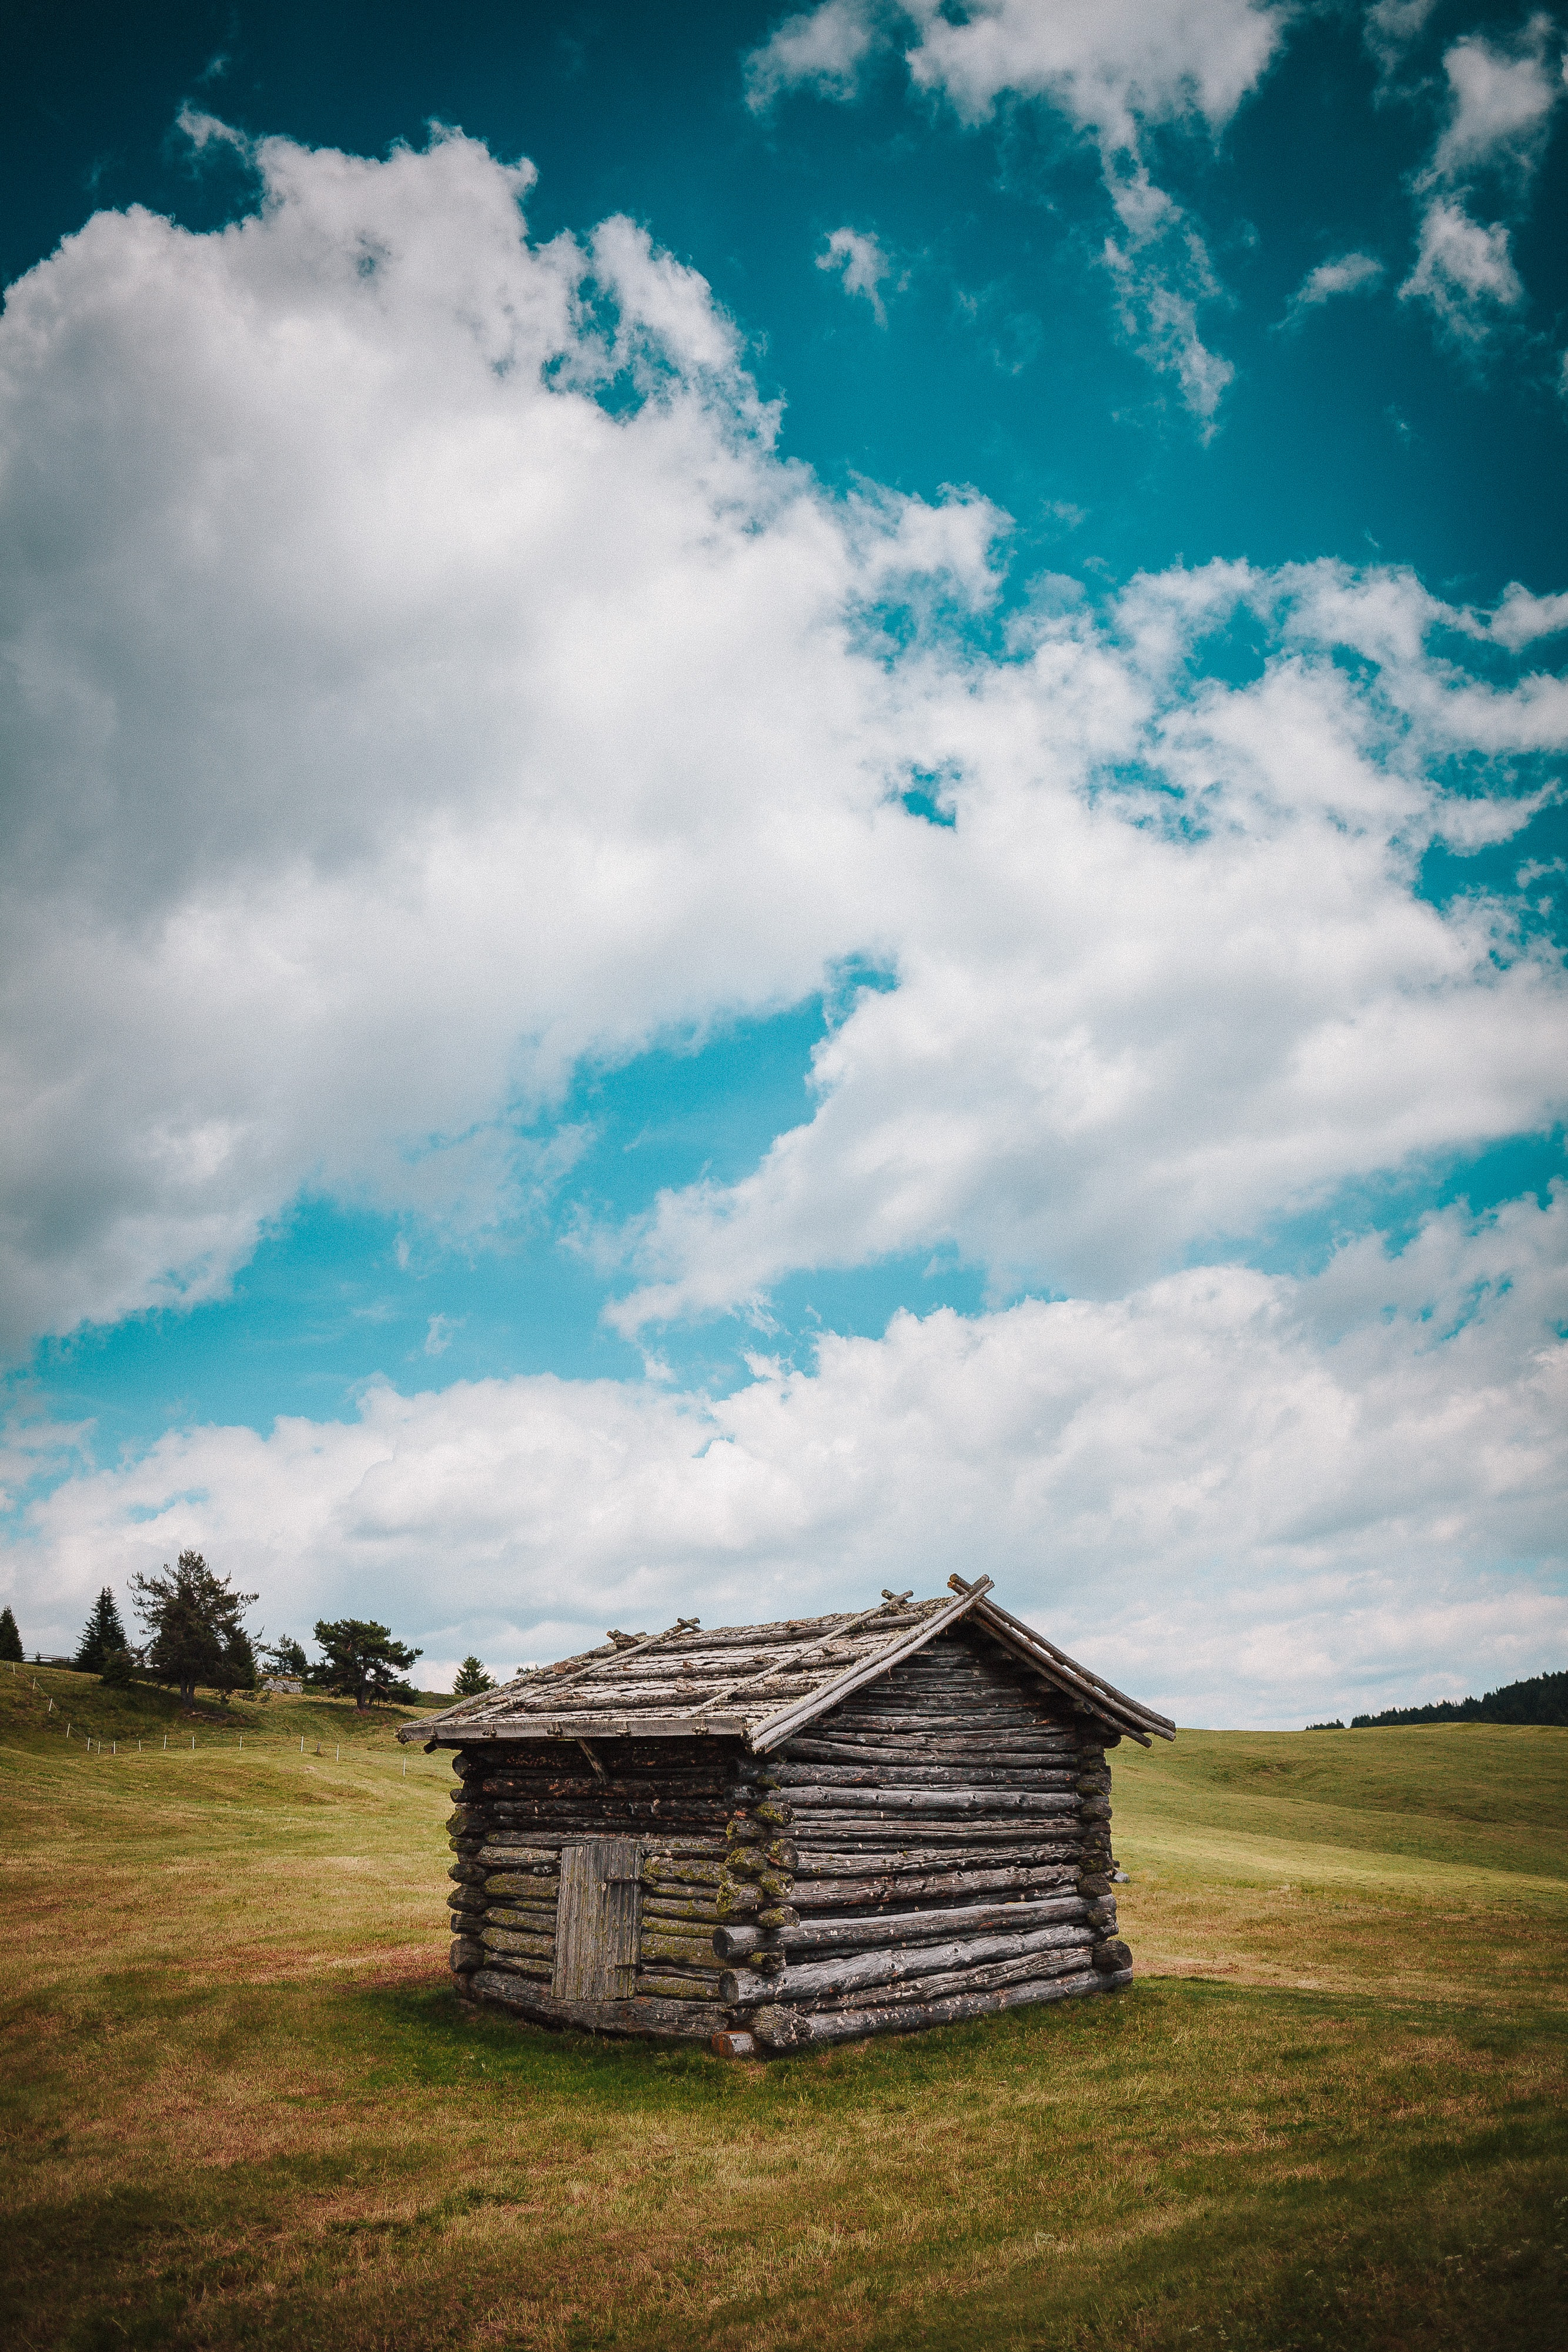 brown tree log shed on grass field